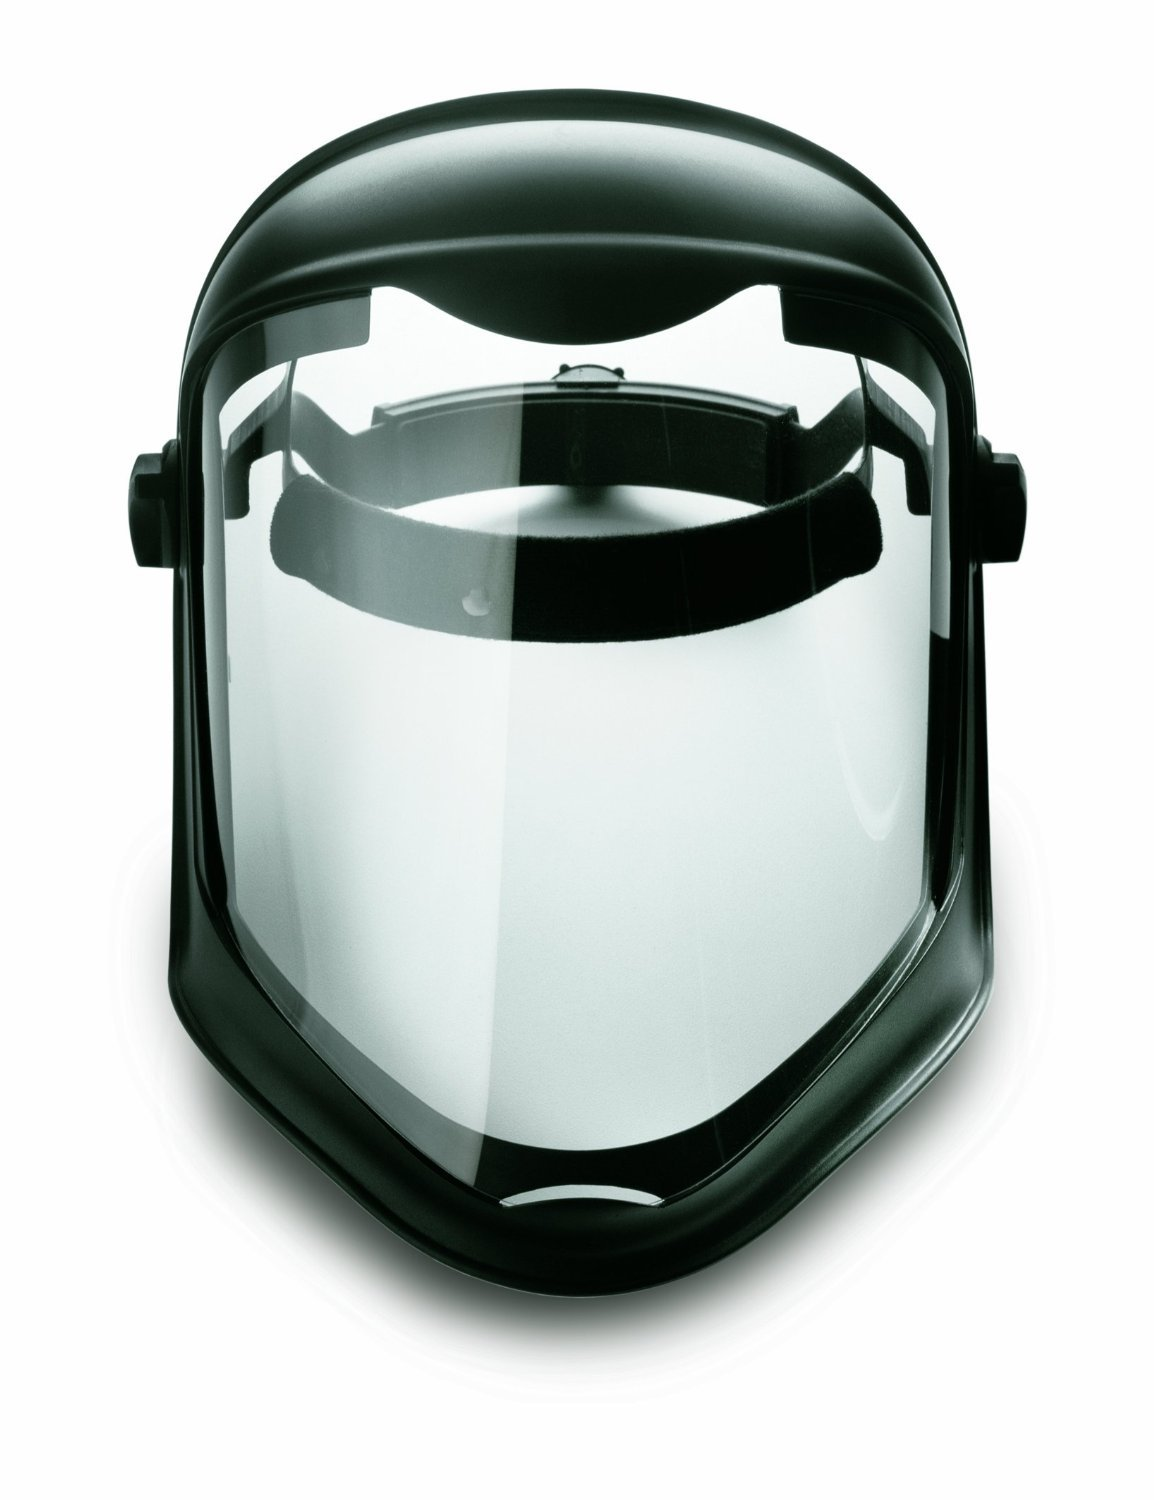 Uvex S8510 Bionic Shield, Black Matte Face Shield, Clear Polycarbonate Anti-Fog/Hardcoat Lens, 3 Pack by Uvex (Image #4)